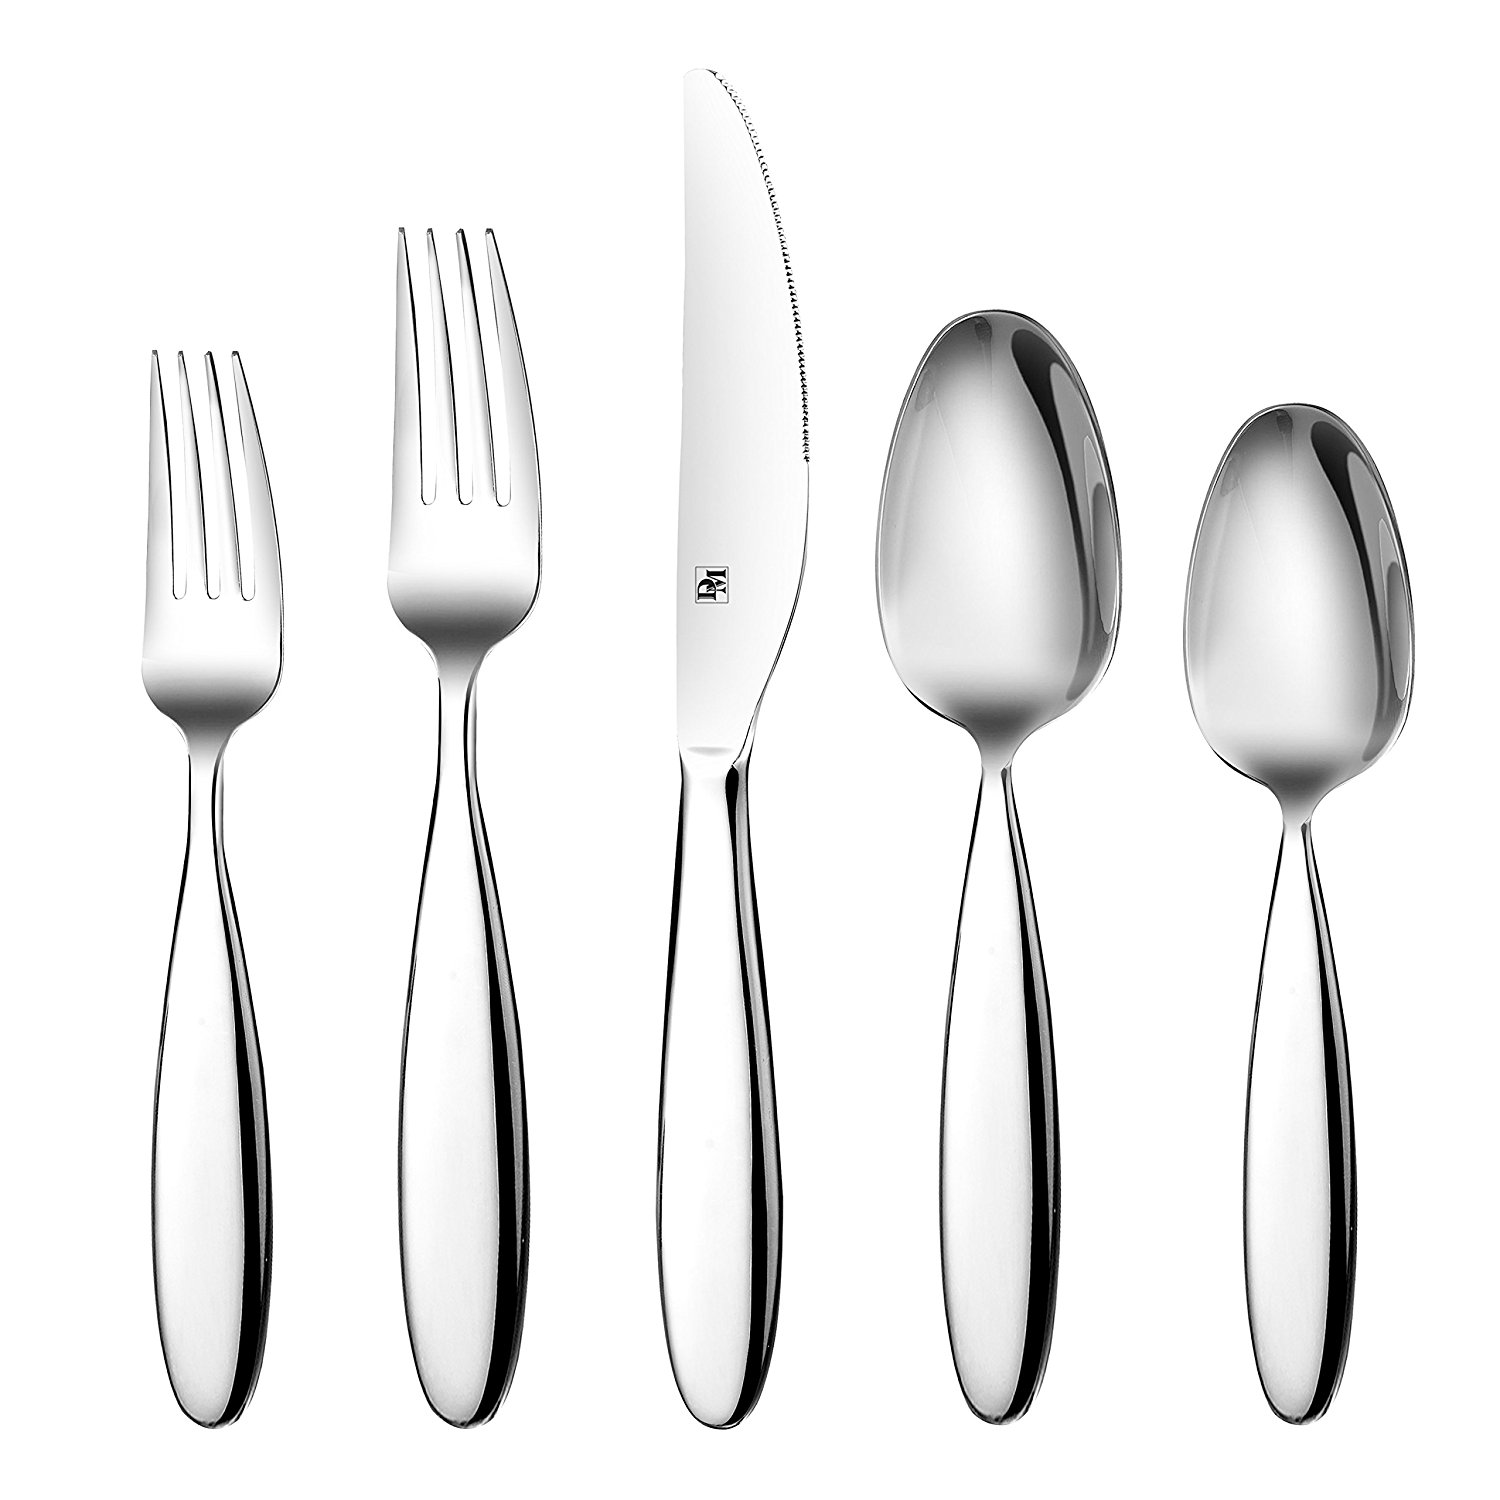 D&M 20-Piece Flatware Set, 18 10 Stainless Steel Mirror Polish Silverware Service for 4 by Neway International Inc